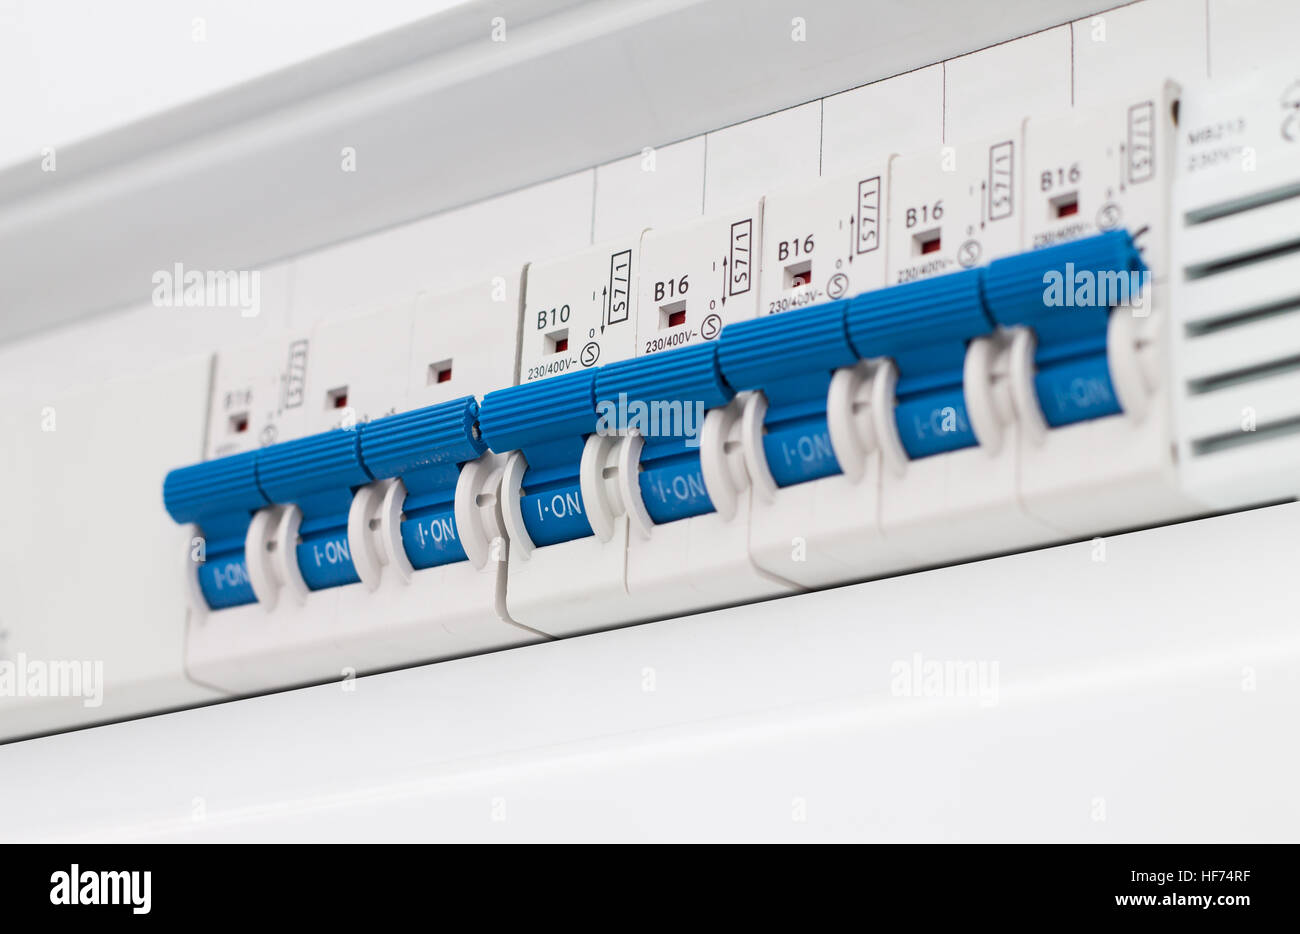 fuse box electric power stock photos fuse box electric power stock rh alamy com